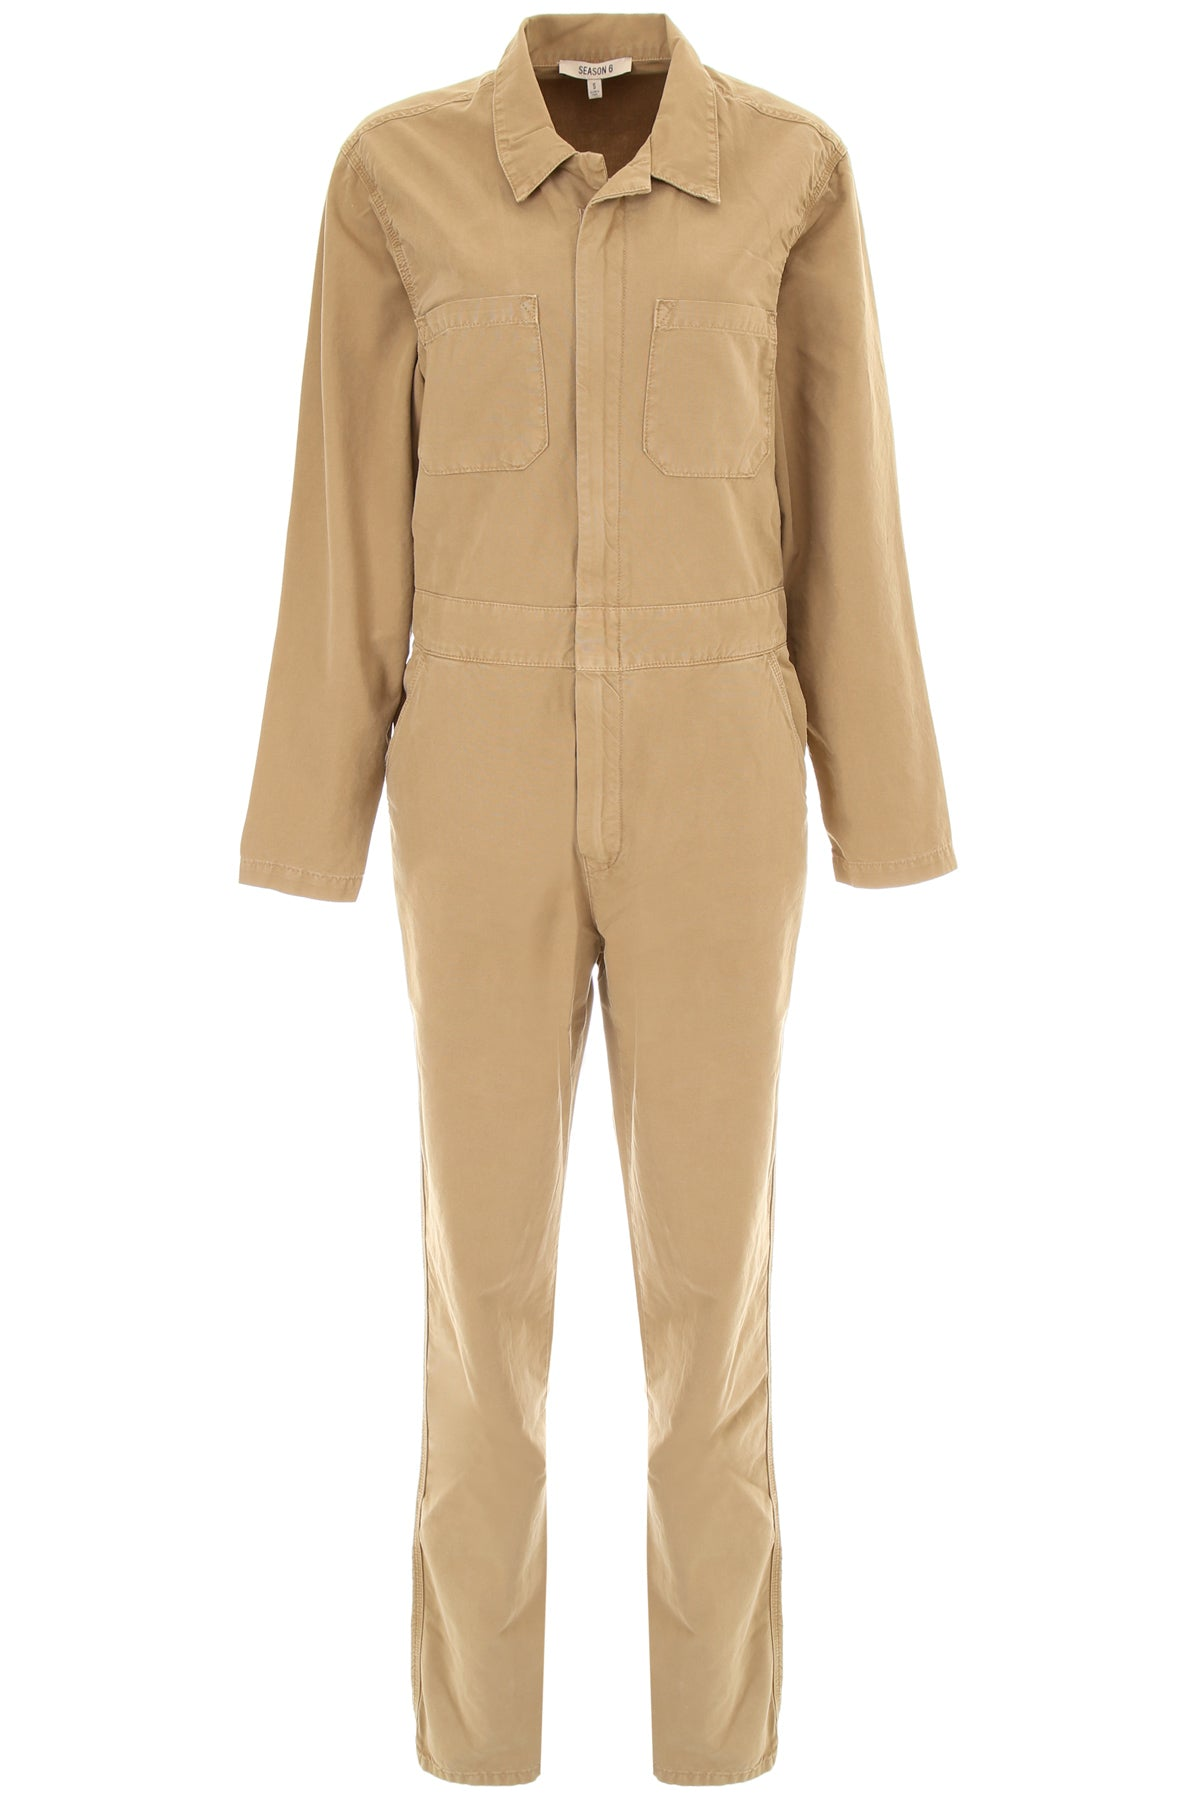 YEEZY WORKWEAR JUMPSUIT